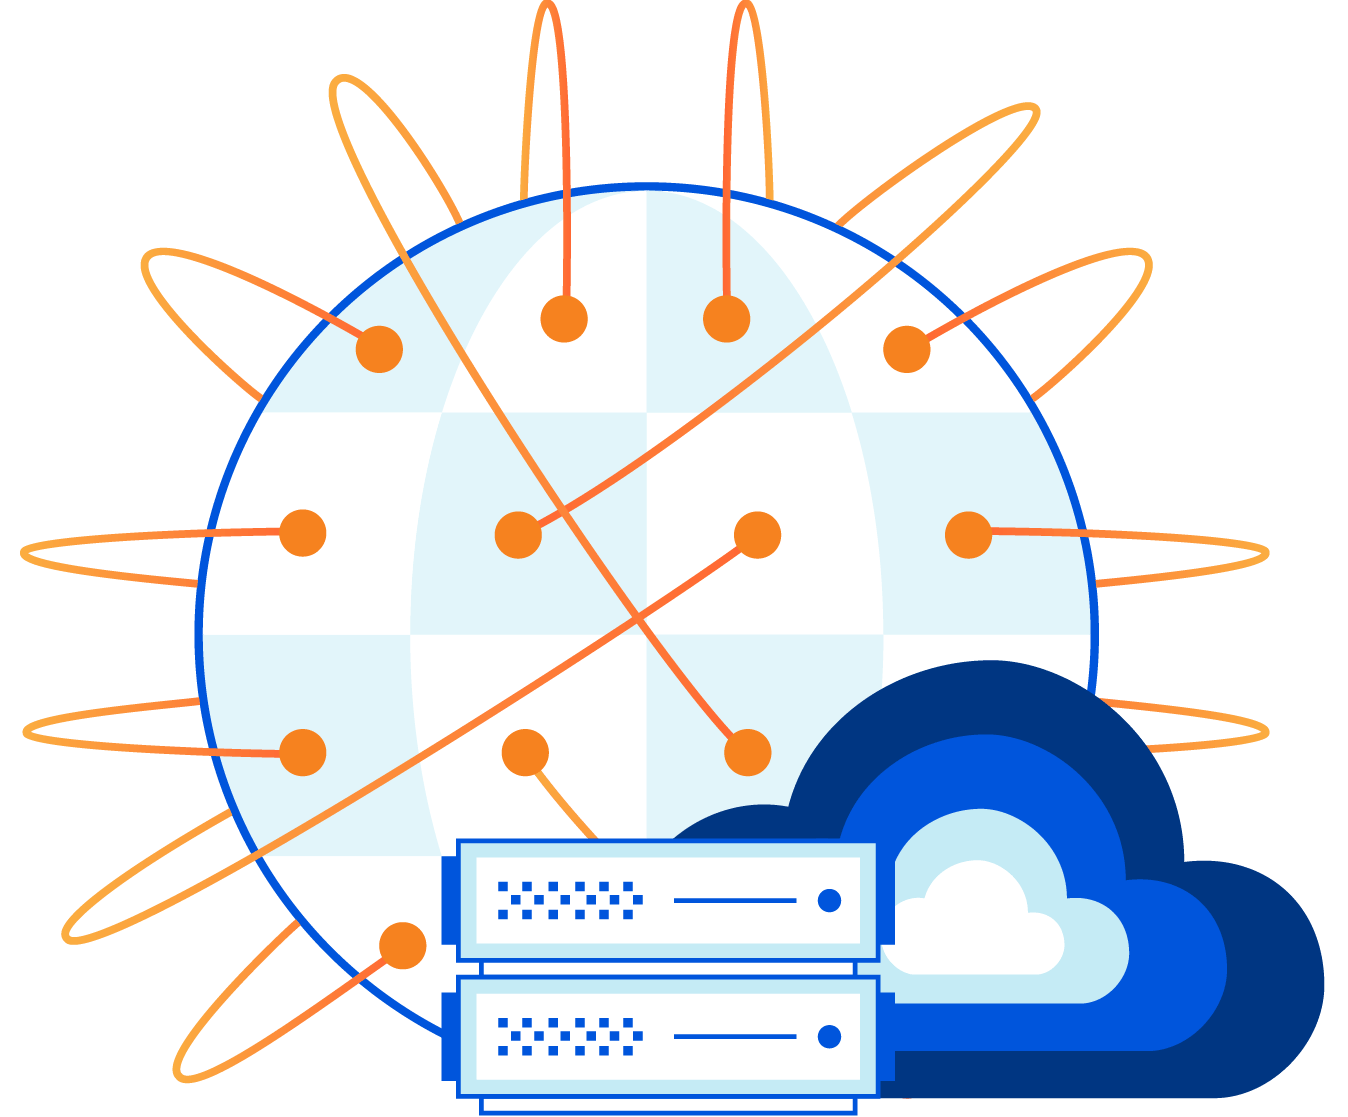 integrated cloud network hero illustration 3x 8